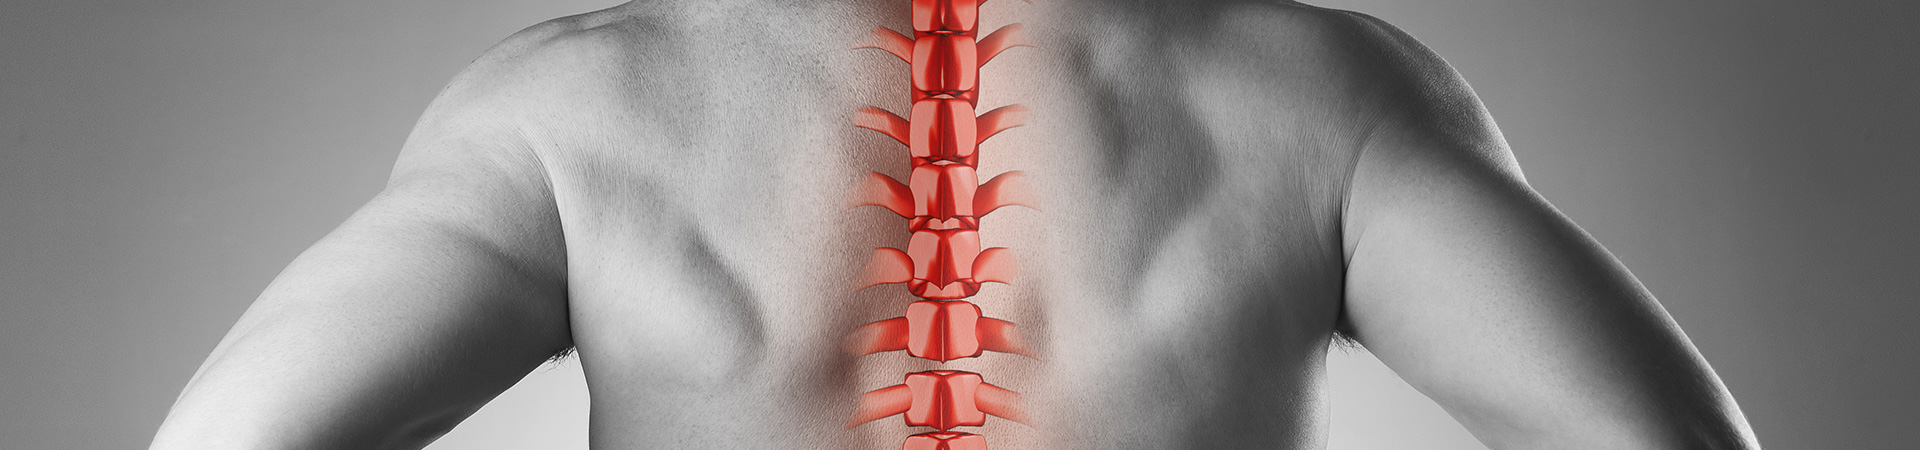 Minimally Invasive Spine Surgery Kennesaw, GA